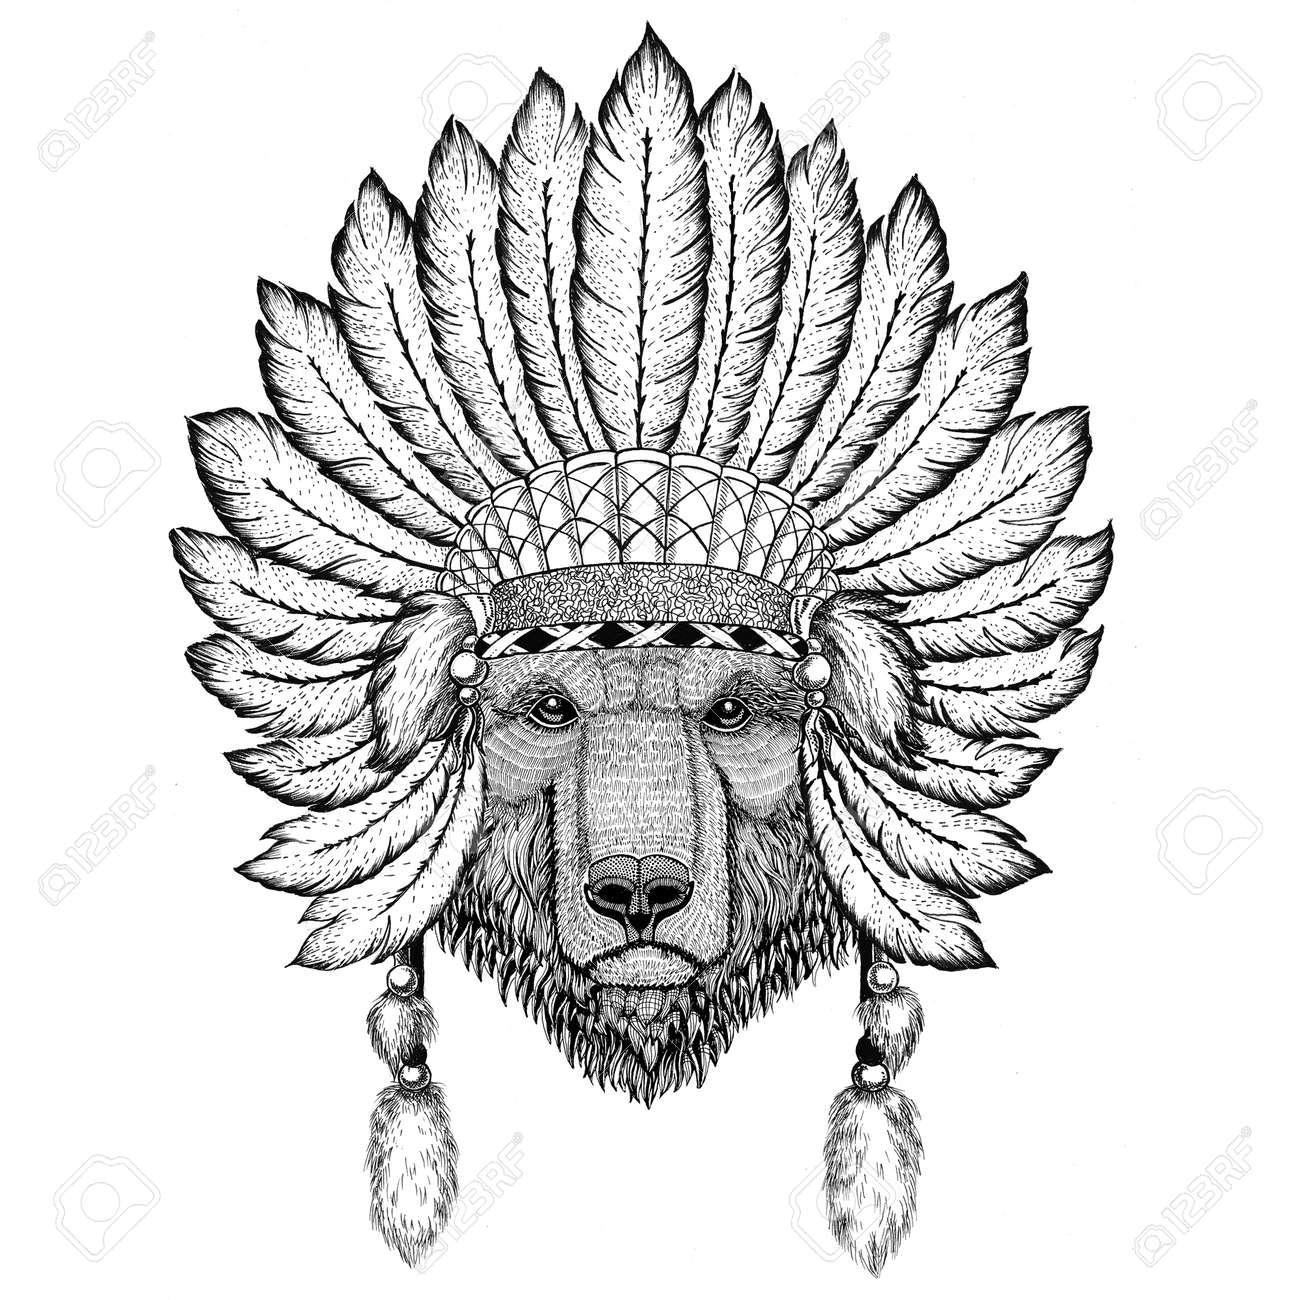 Brown bear Russian bear Wild animal wearing indiat hat with feathers Boho style vintage engraving illustration Image for tattoo, logo, badge, emblem, poster - 83542441